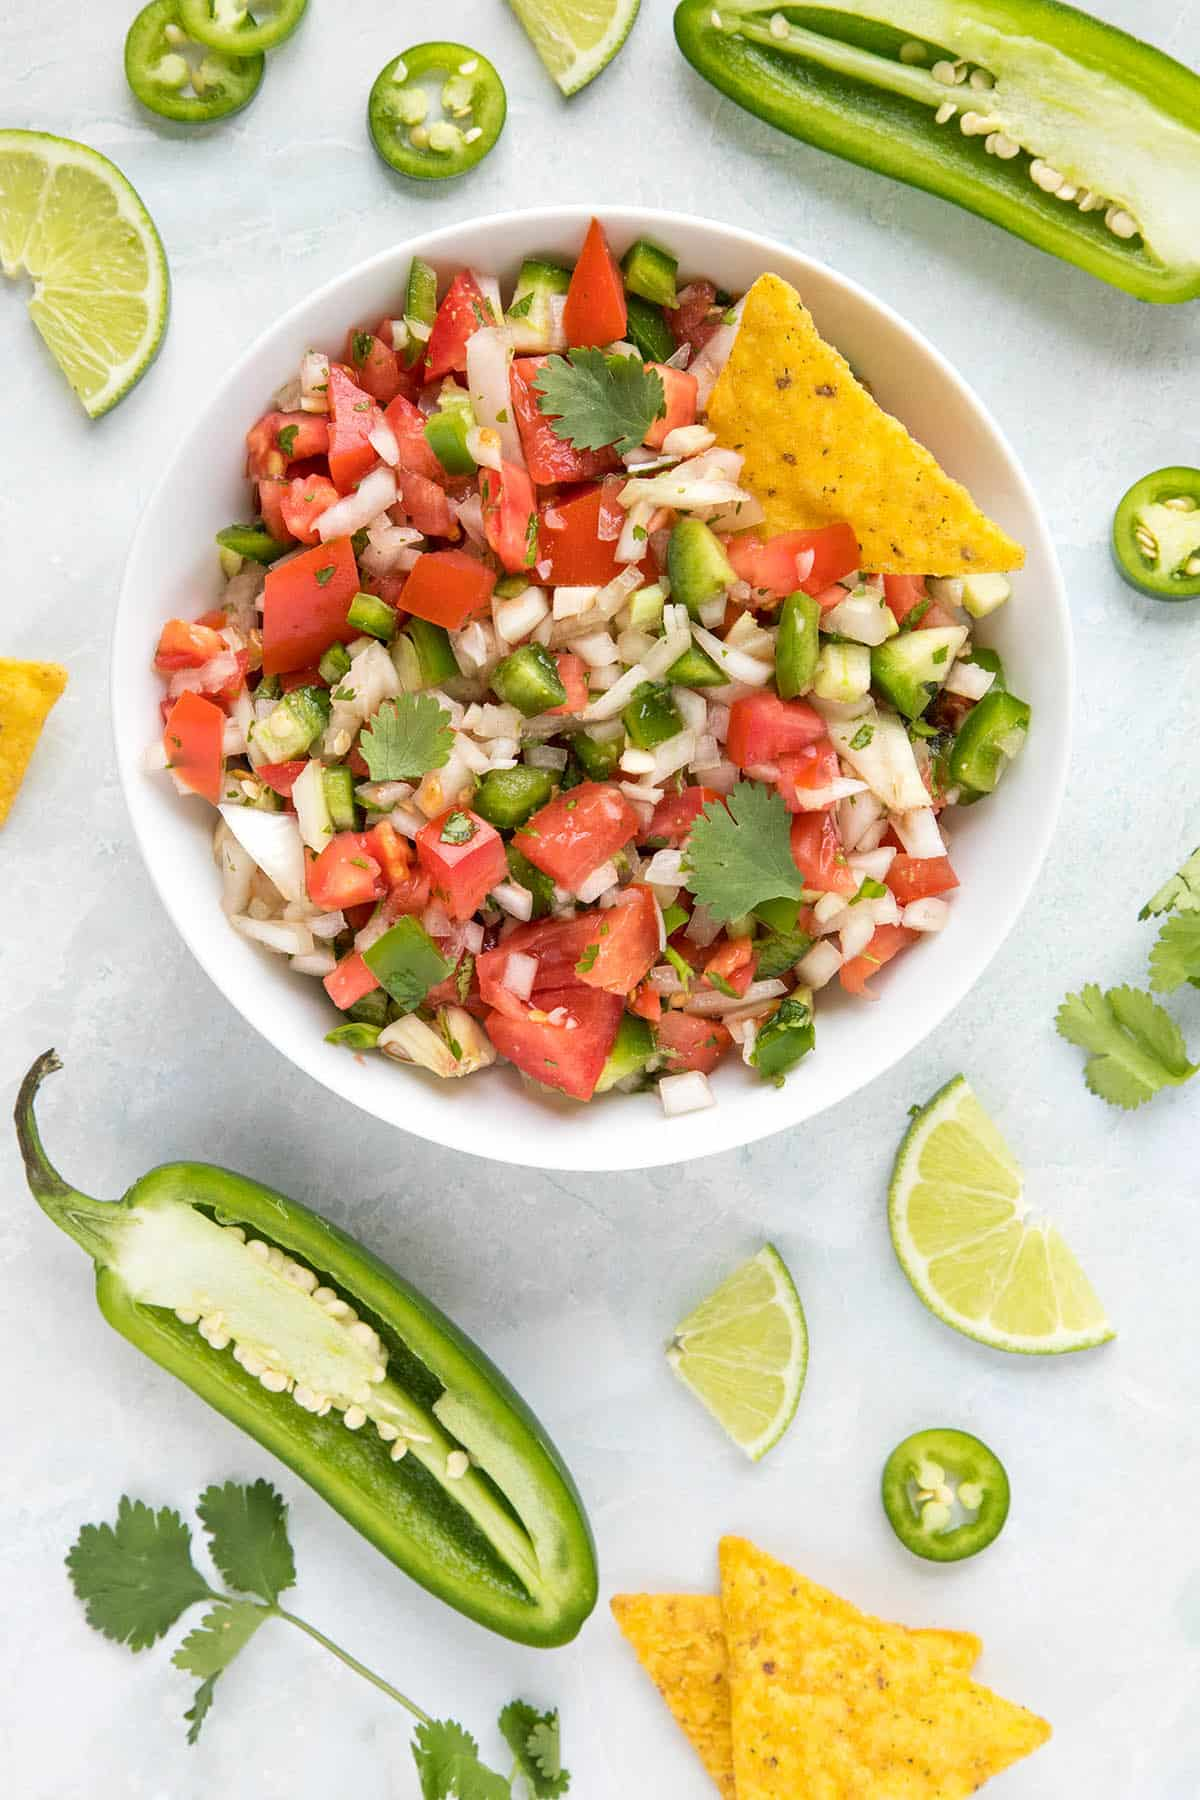 Vibrant, colorful Pico de Gallo in a bowl